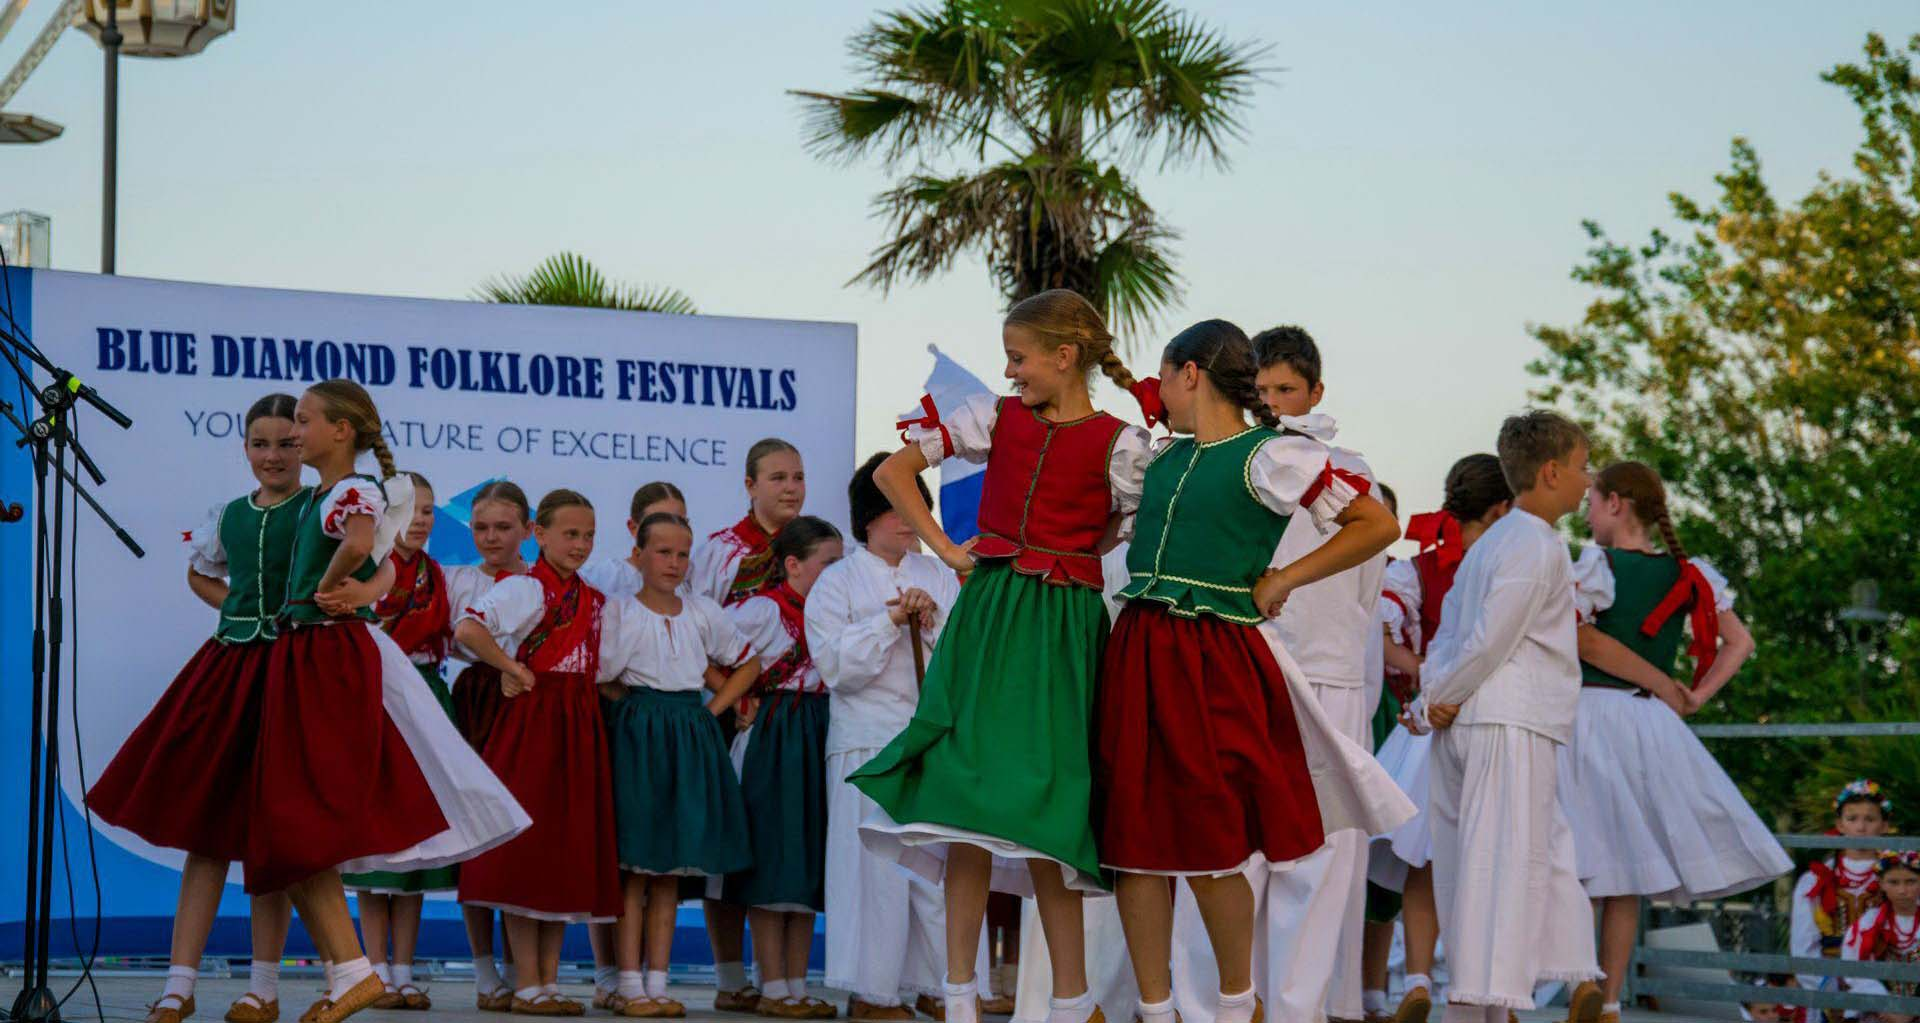 READY TO DISCOVER TUSCANY in folklore festival Montecatini Terme?